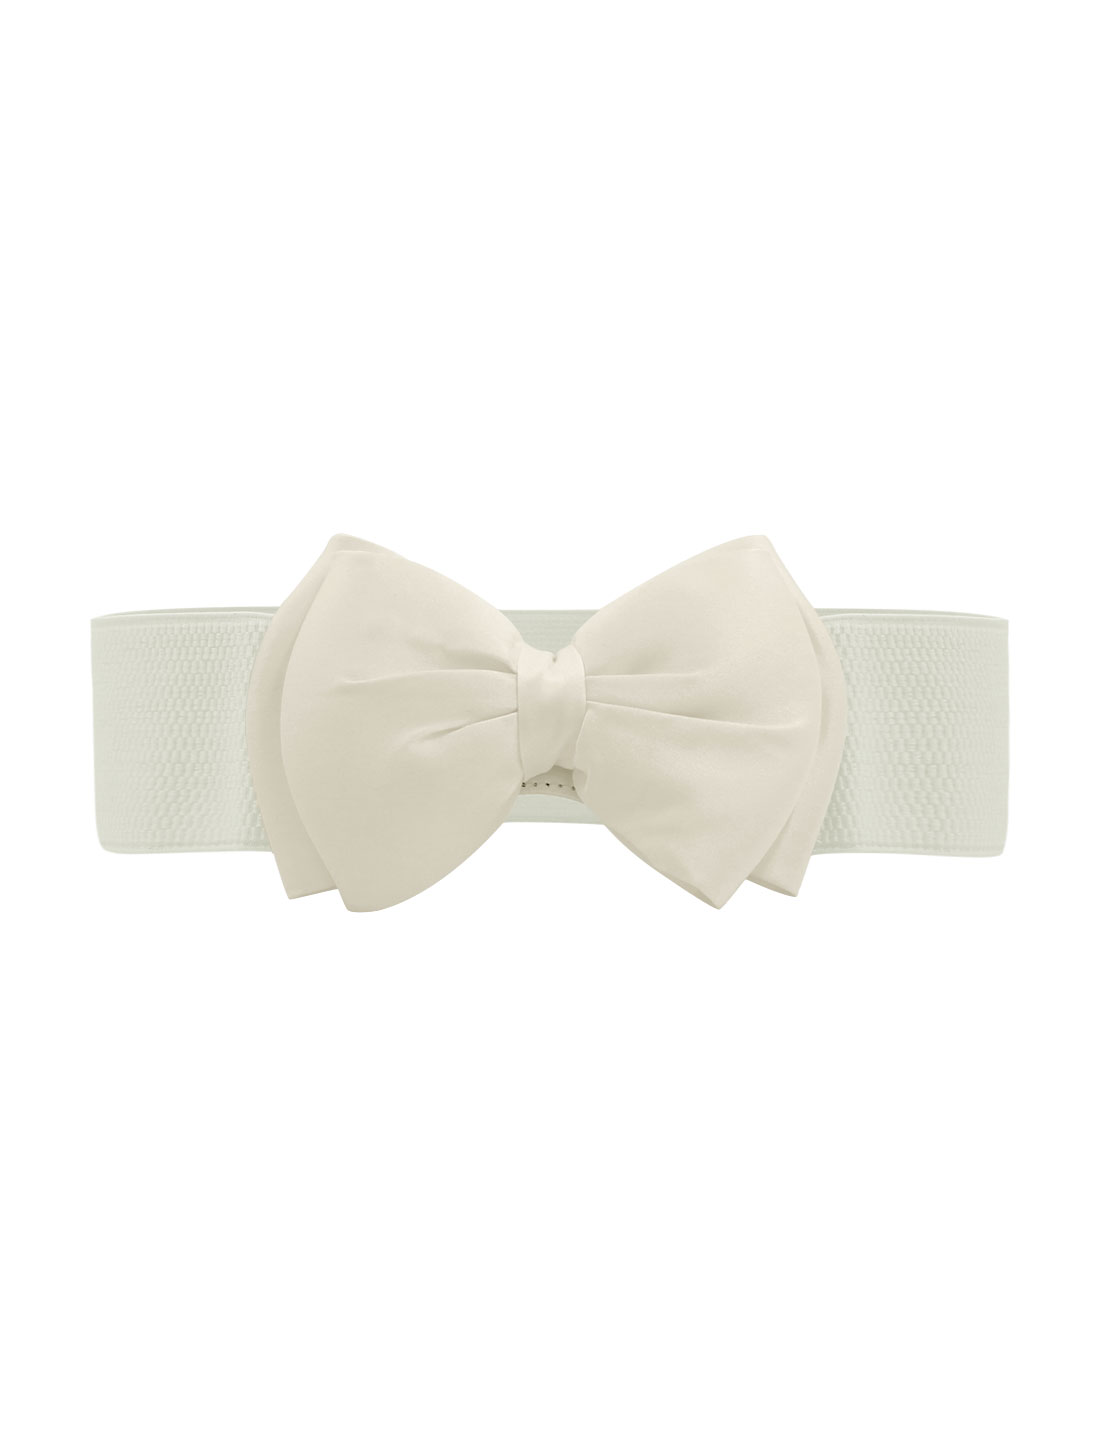 Women Press Studs Closure Bowknot Elastic Waist Belt White